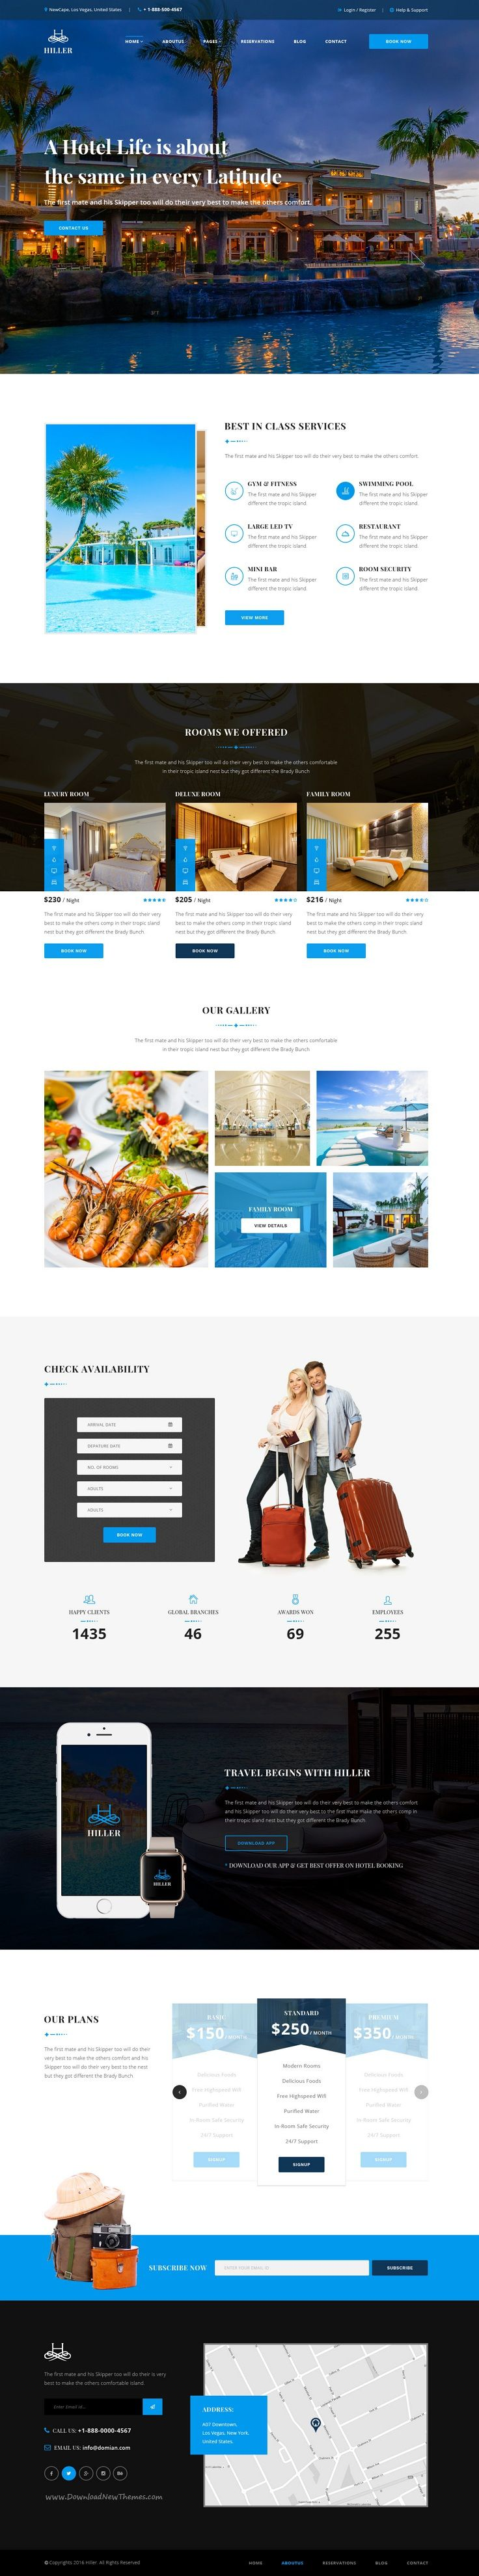 Hiller is stunning premium #PSD Template for #hotel #booking website with 3 amazing homepage and 17 organized 17 PSD pages download now➯ https://themeforest.net/item/hiller-hotel-booking-psd-template/16978451?ref=Datasata